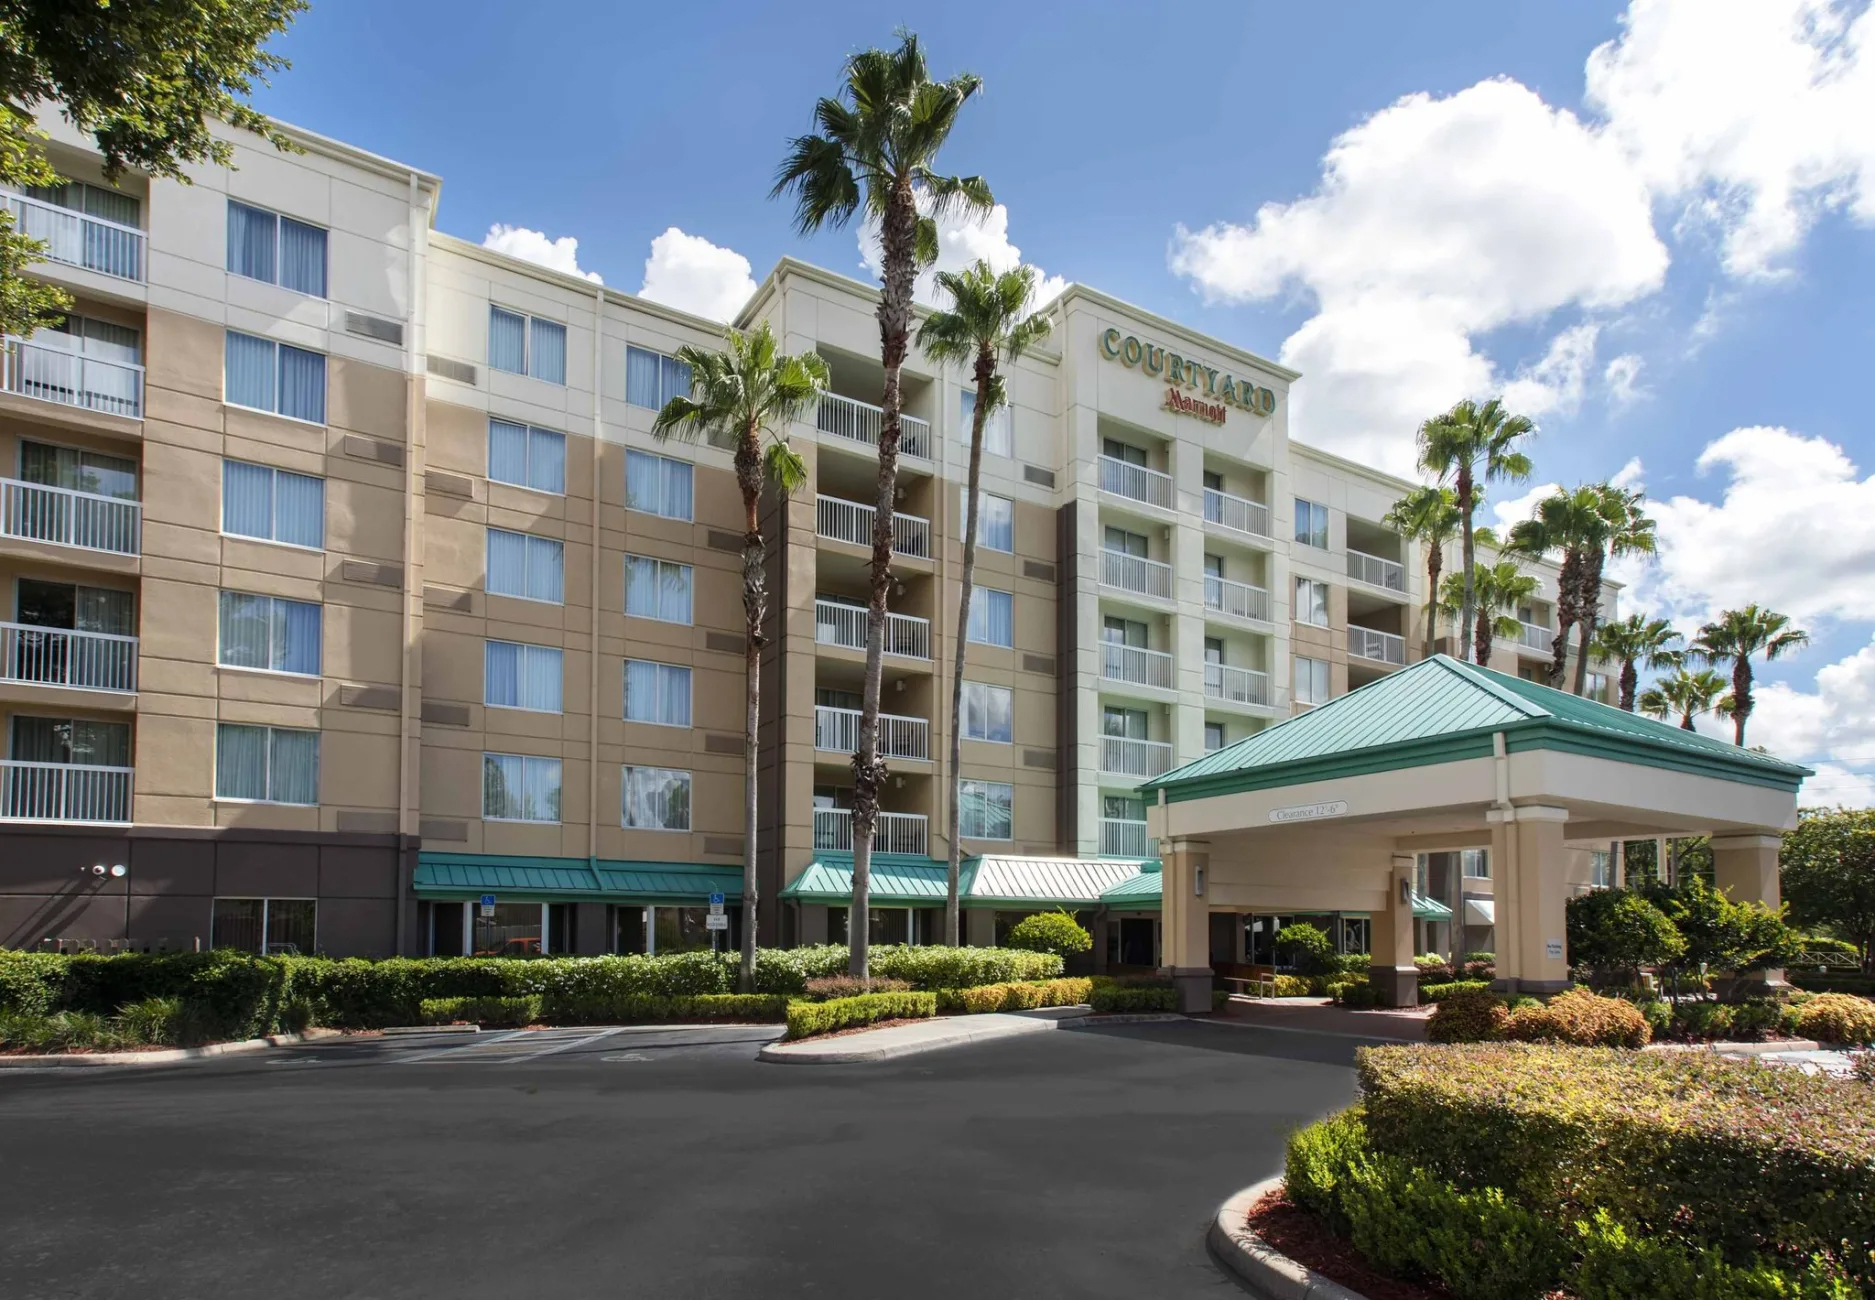 Hotels to Stay in Downtown Orlando - Courtyard by Marriott Orlando Downtown